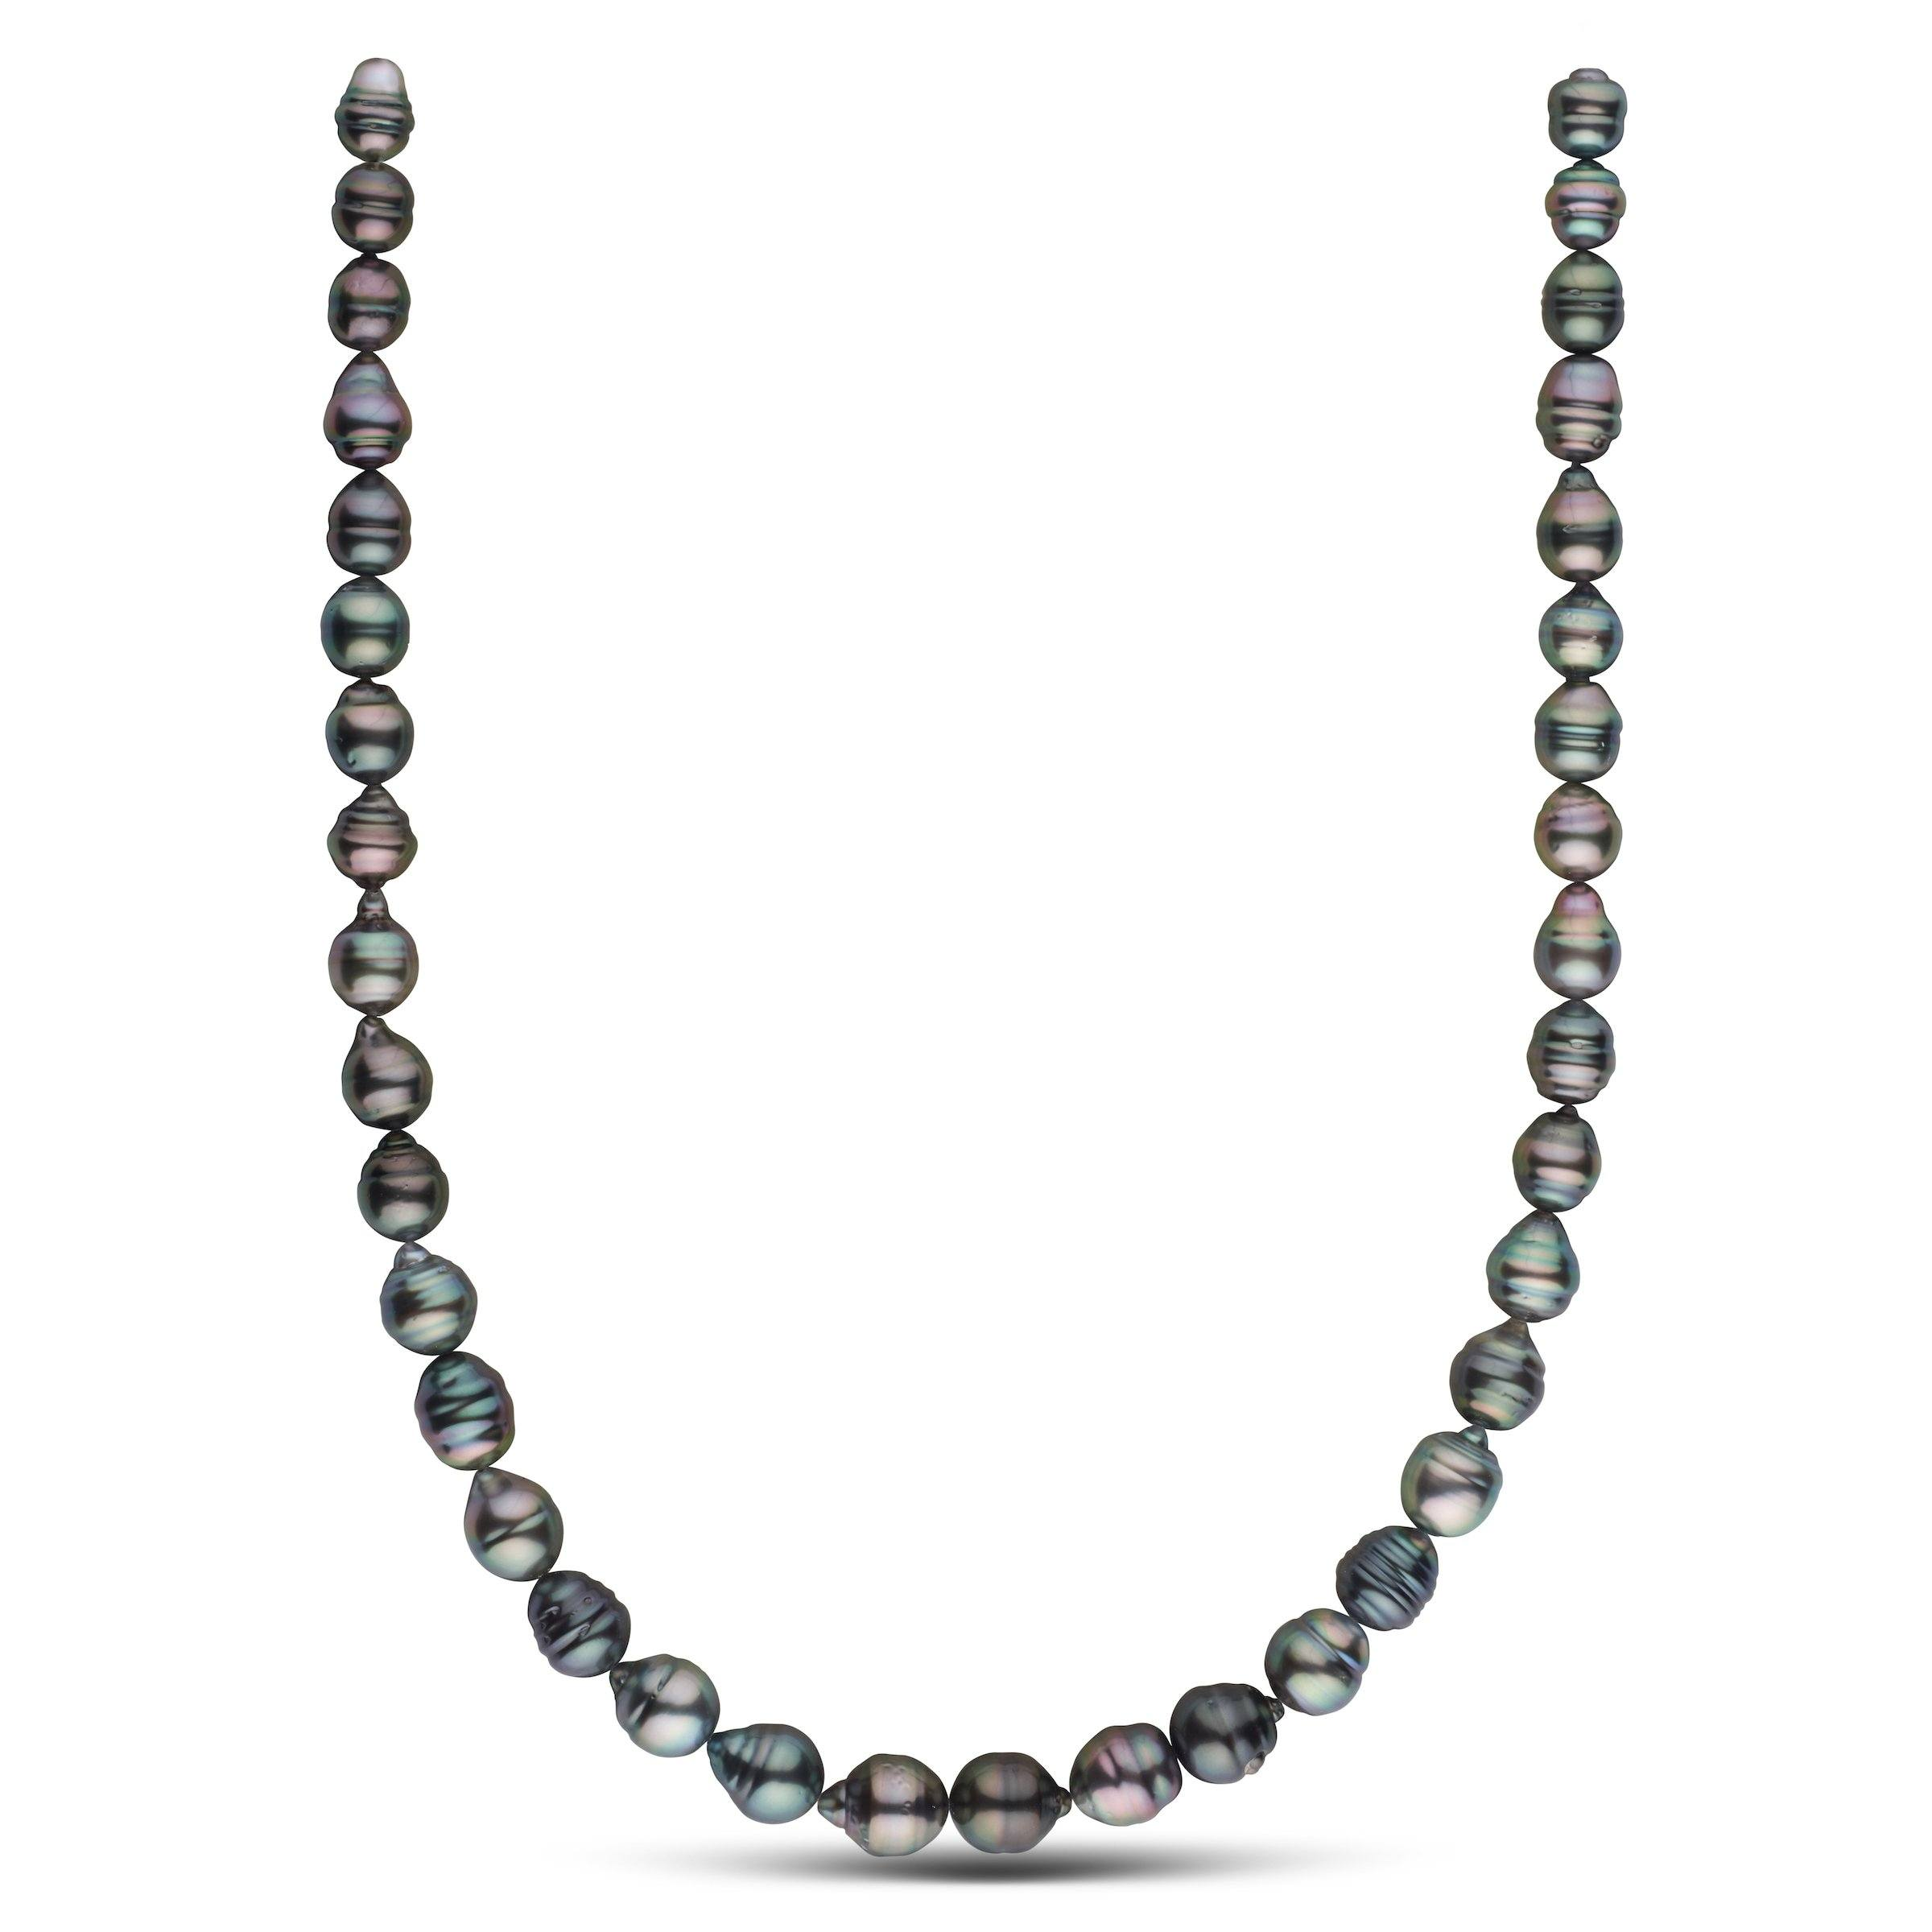 8.0-10.2 mm AA+/AAA Tahitian Baroque Pearl Necklace